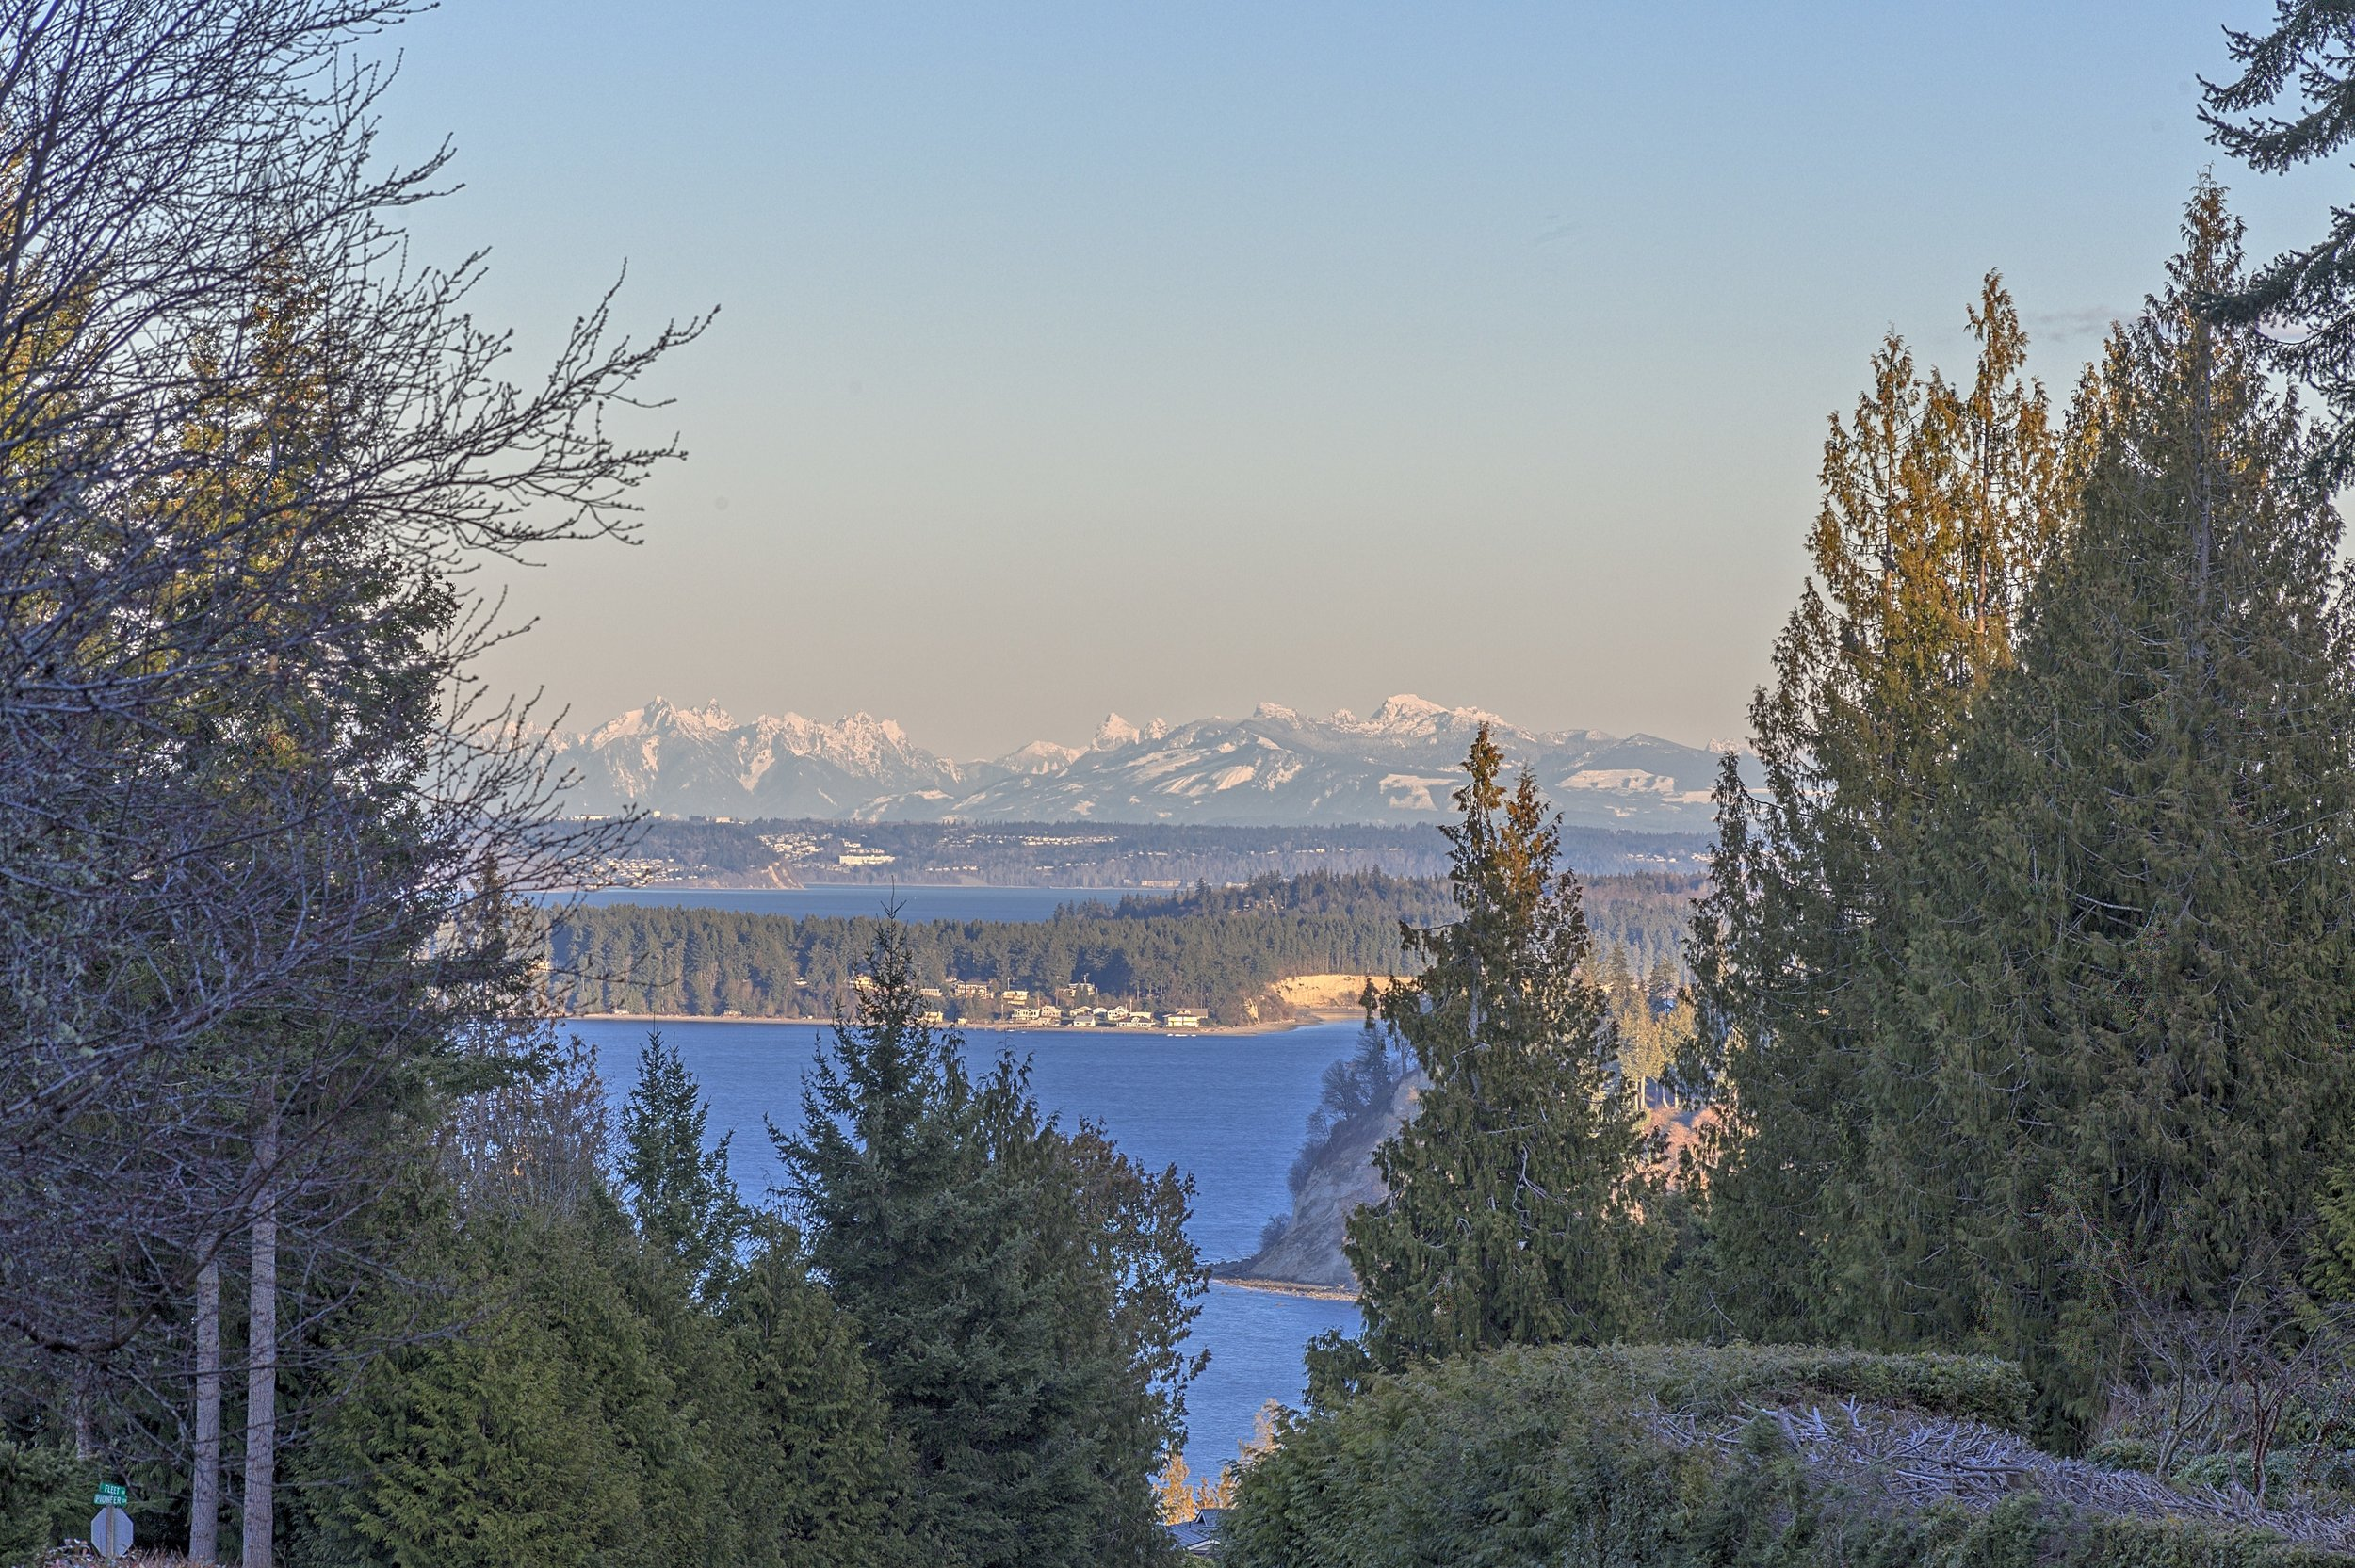 The Puget Sound and Cascades from Port Ludlow, WA (03/03/2019)